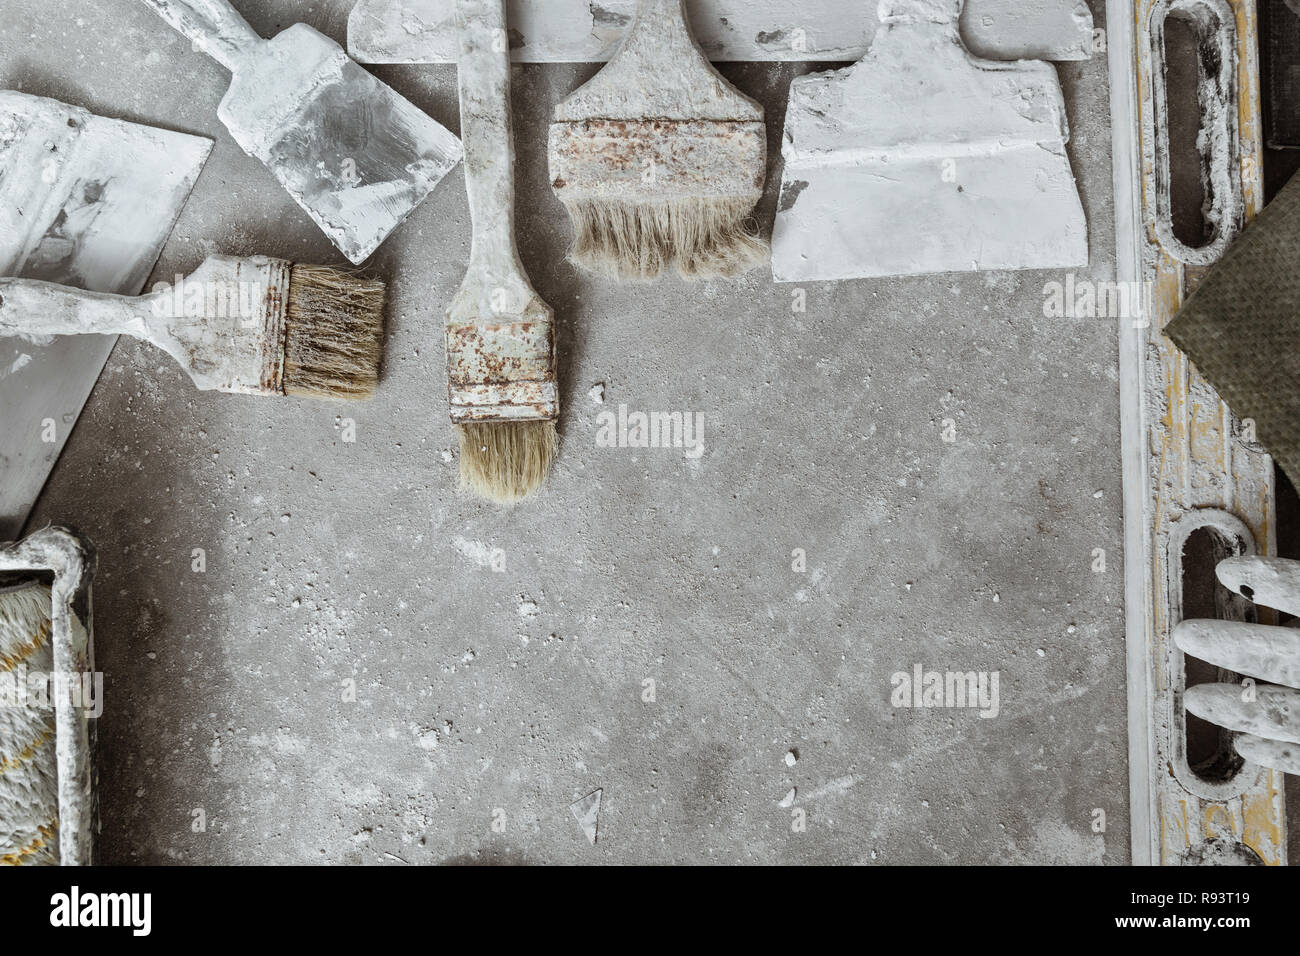 Concrete Rooms Tools For Finishing The Rooms On The Concrete Floor Background